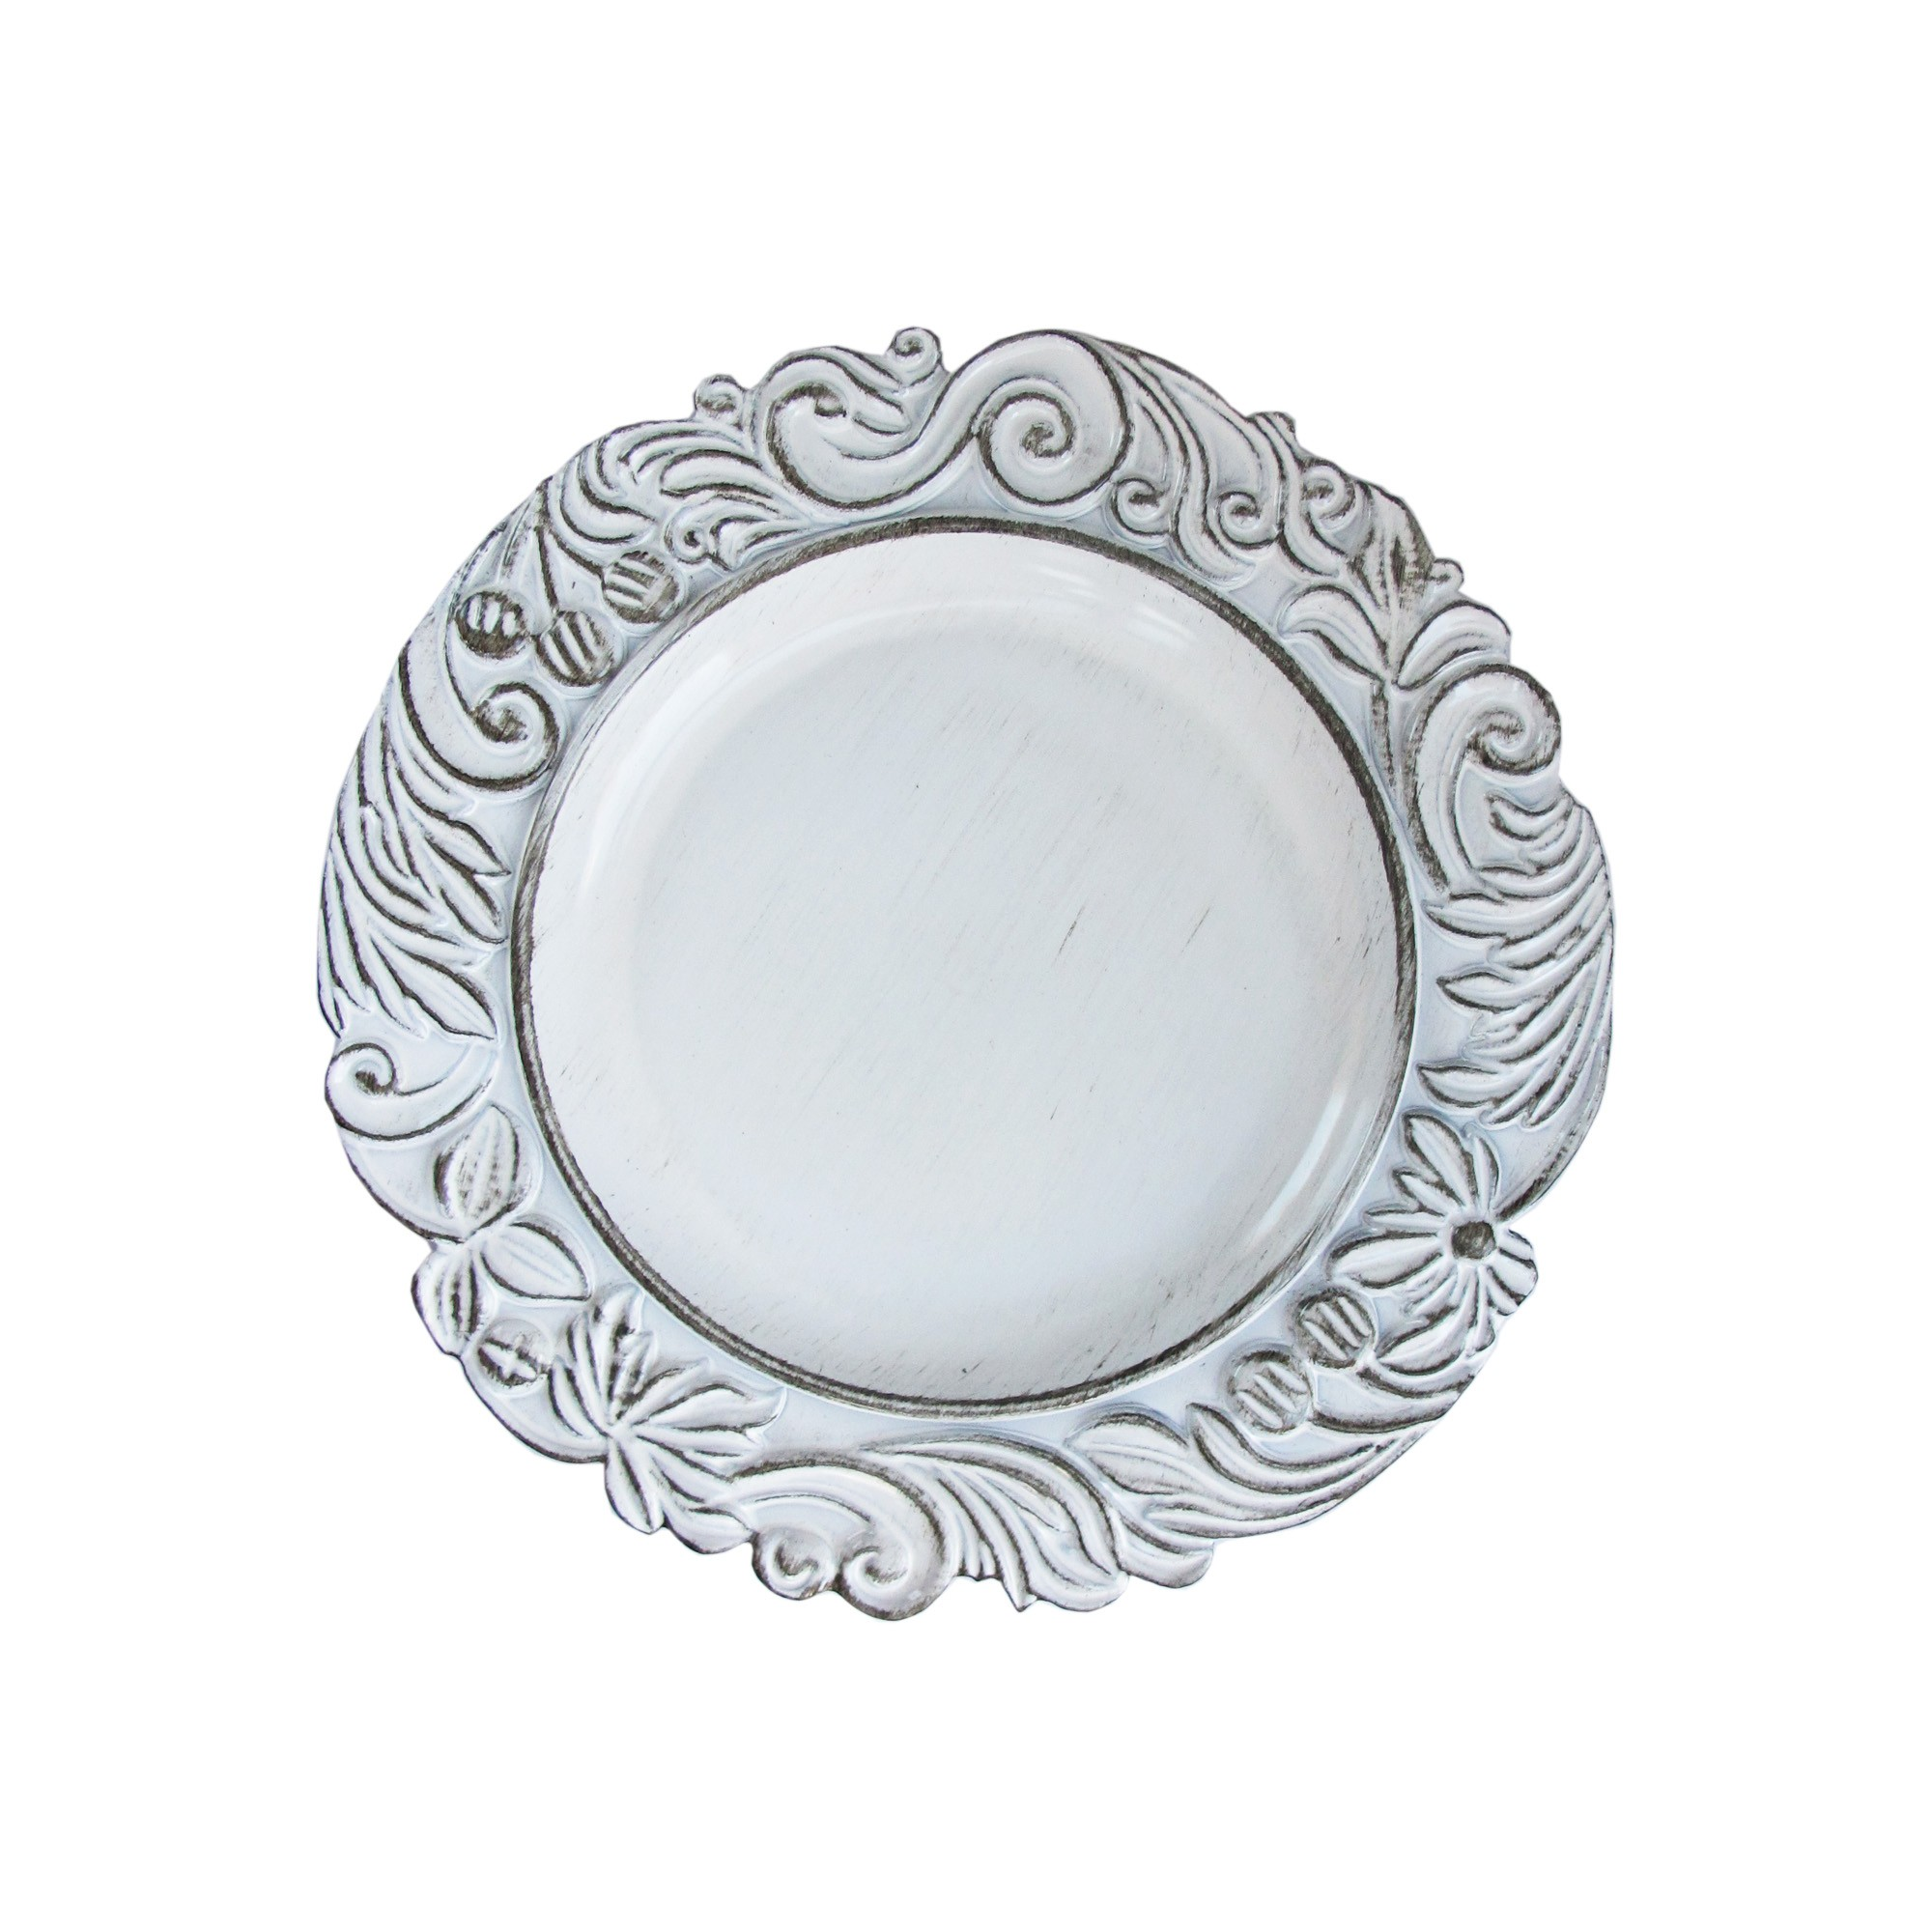 "Jay Import 1270283 Aristocrat White Antique 14"" Charger Plate"